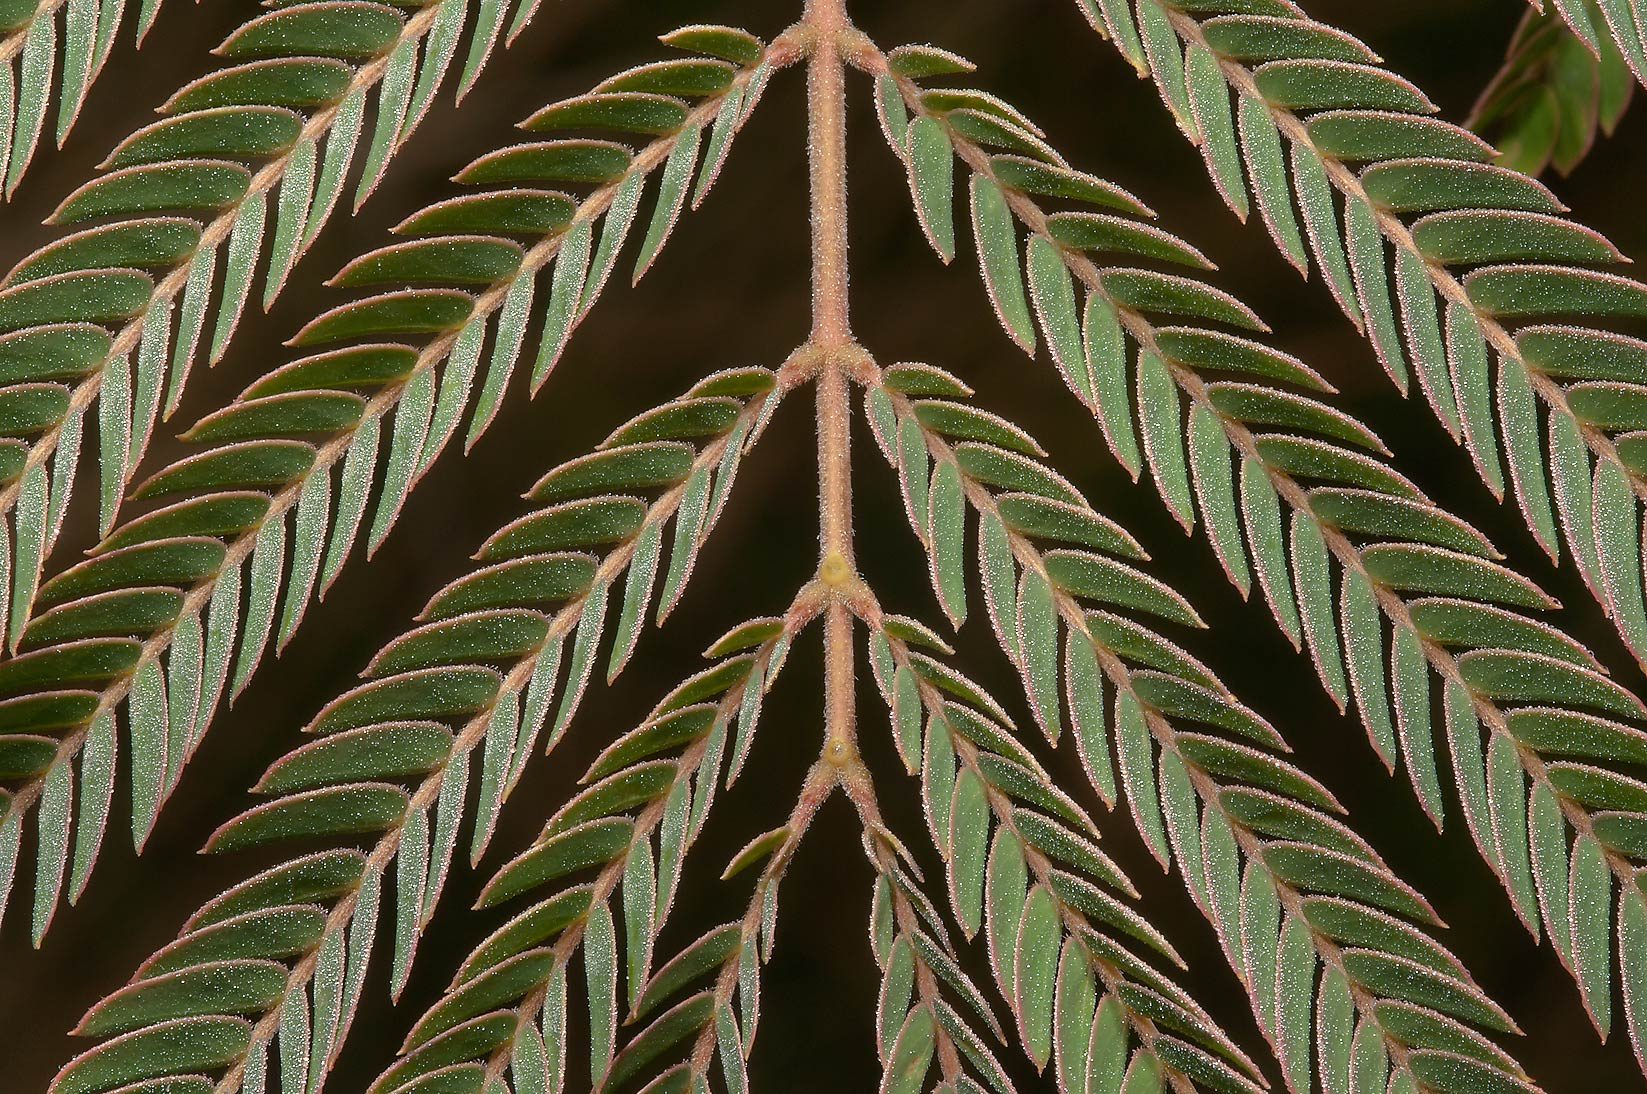 Leaf pattern of mimosa (Albizia julibrissin) in...M University. College Station, Texas